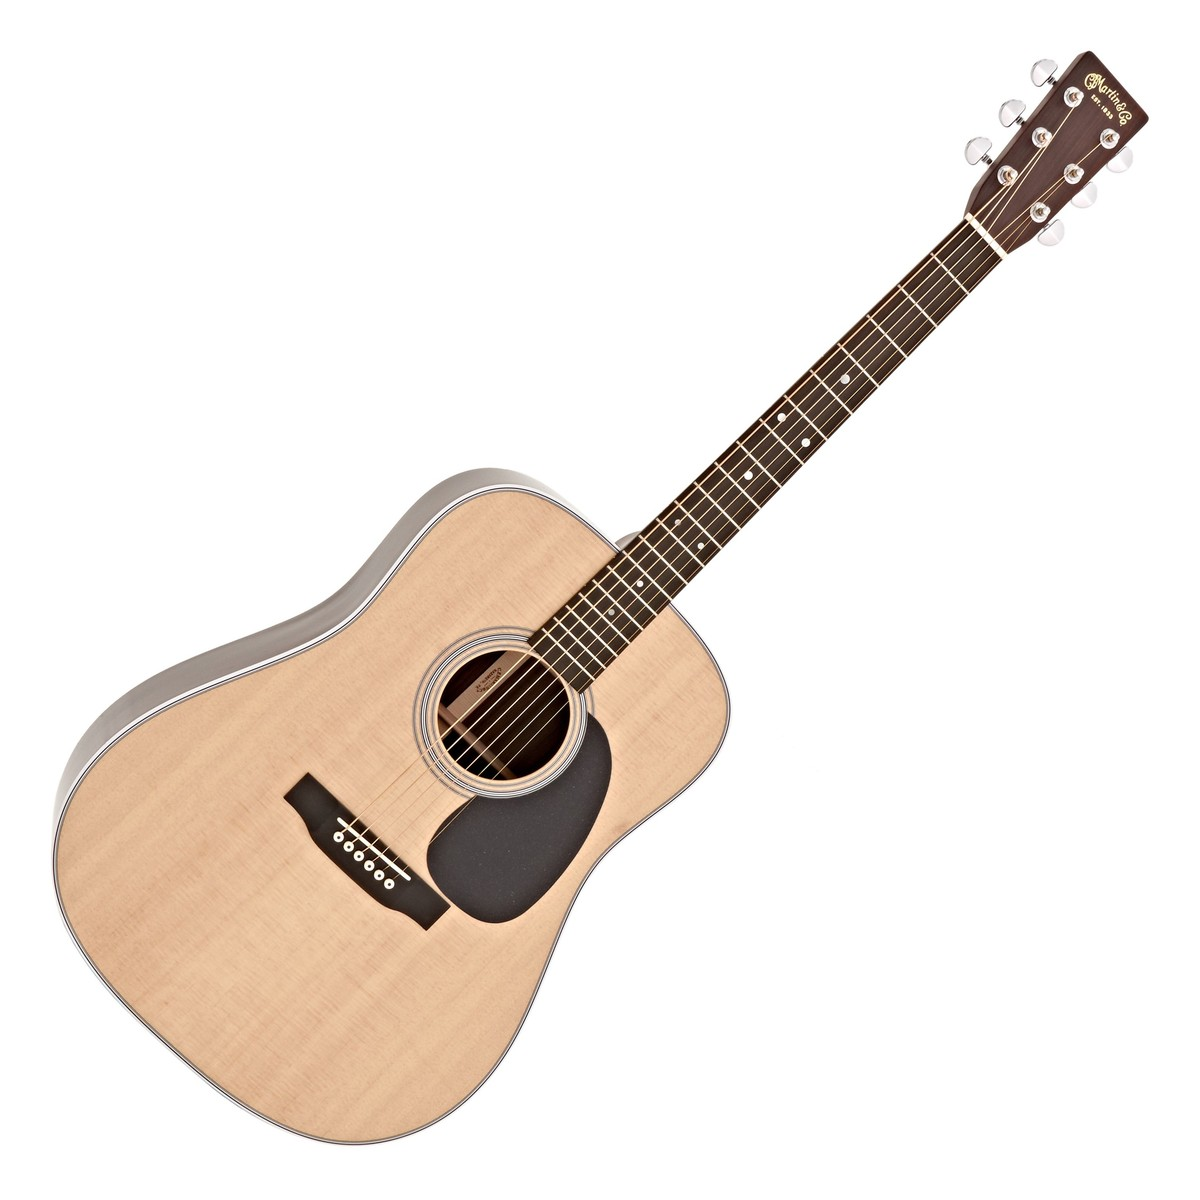 martin d 28 dreadnought acoustic guitar at gear4music. Black Bedroom Furniture Sets. Home Design Ideas